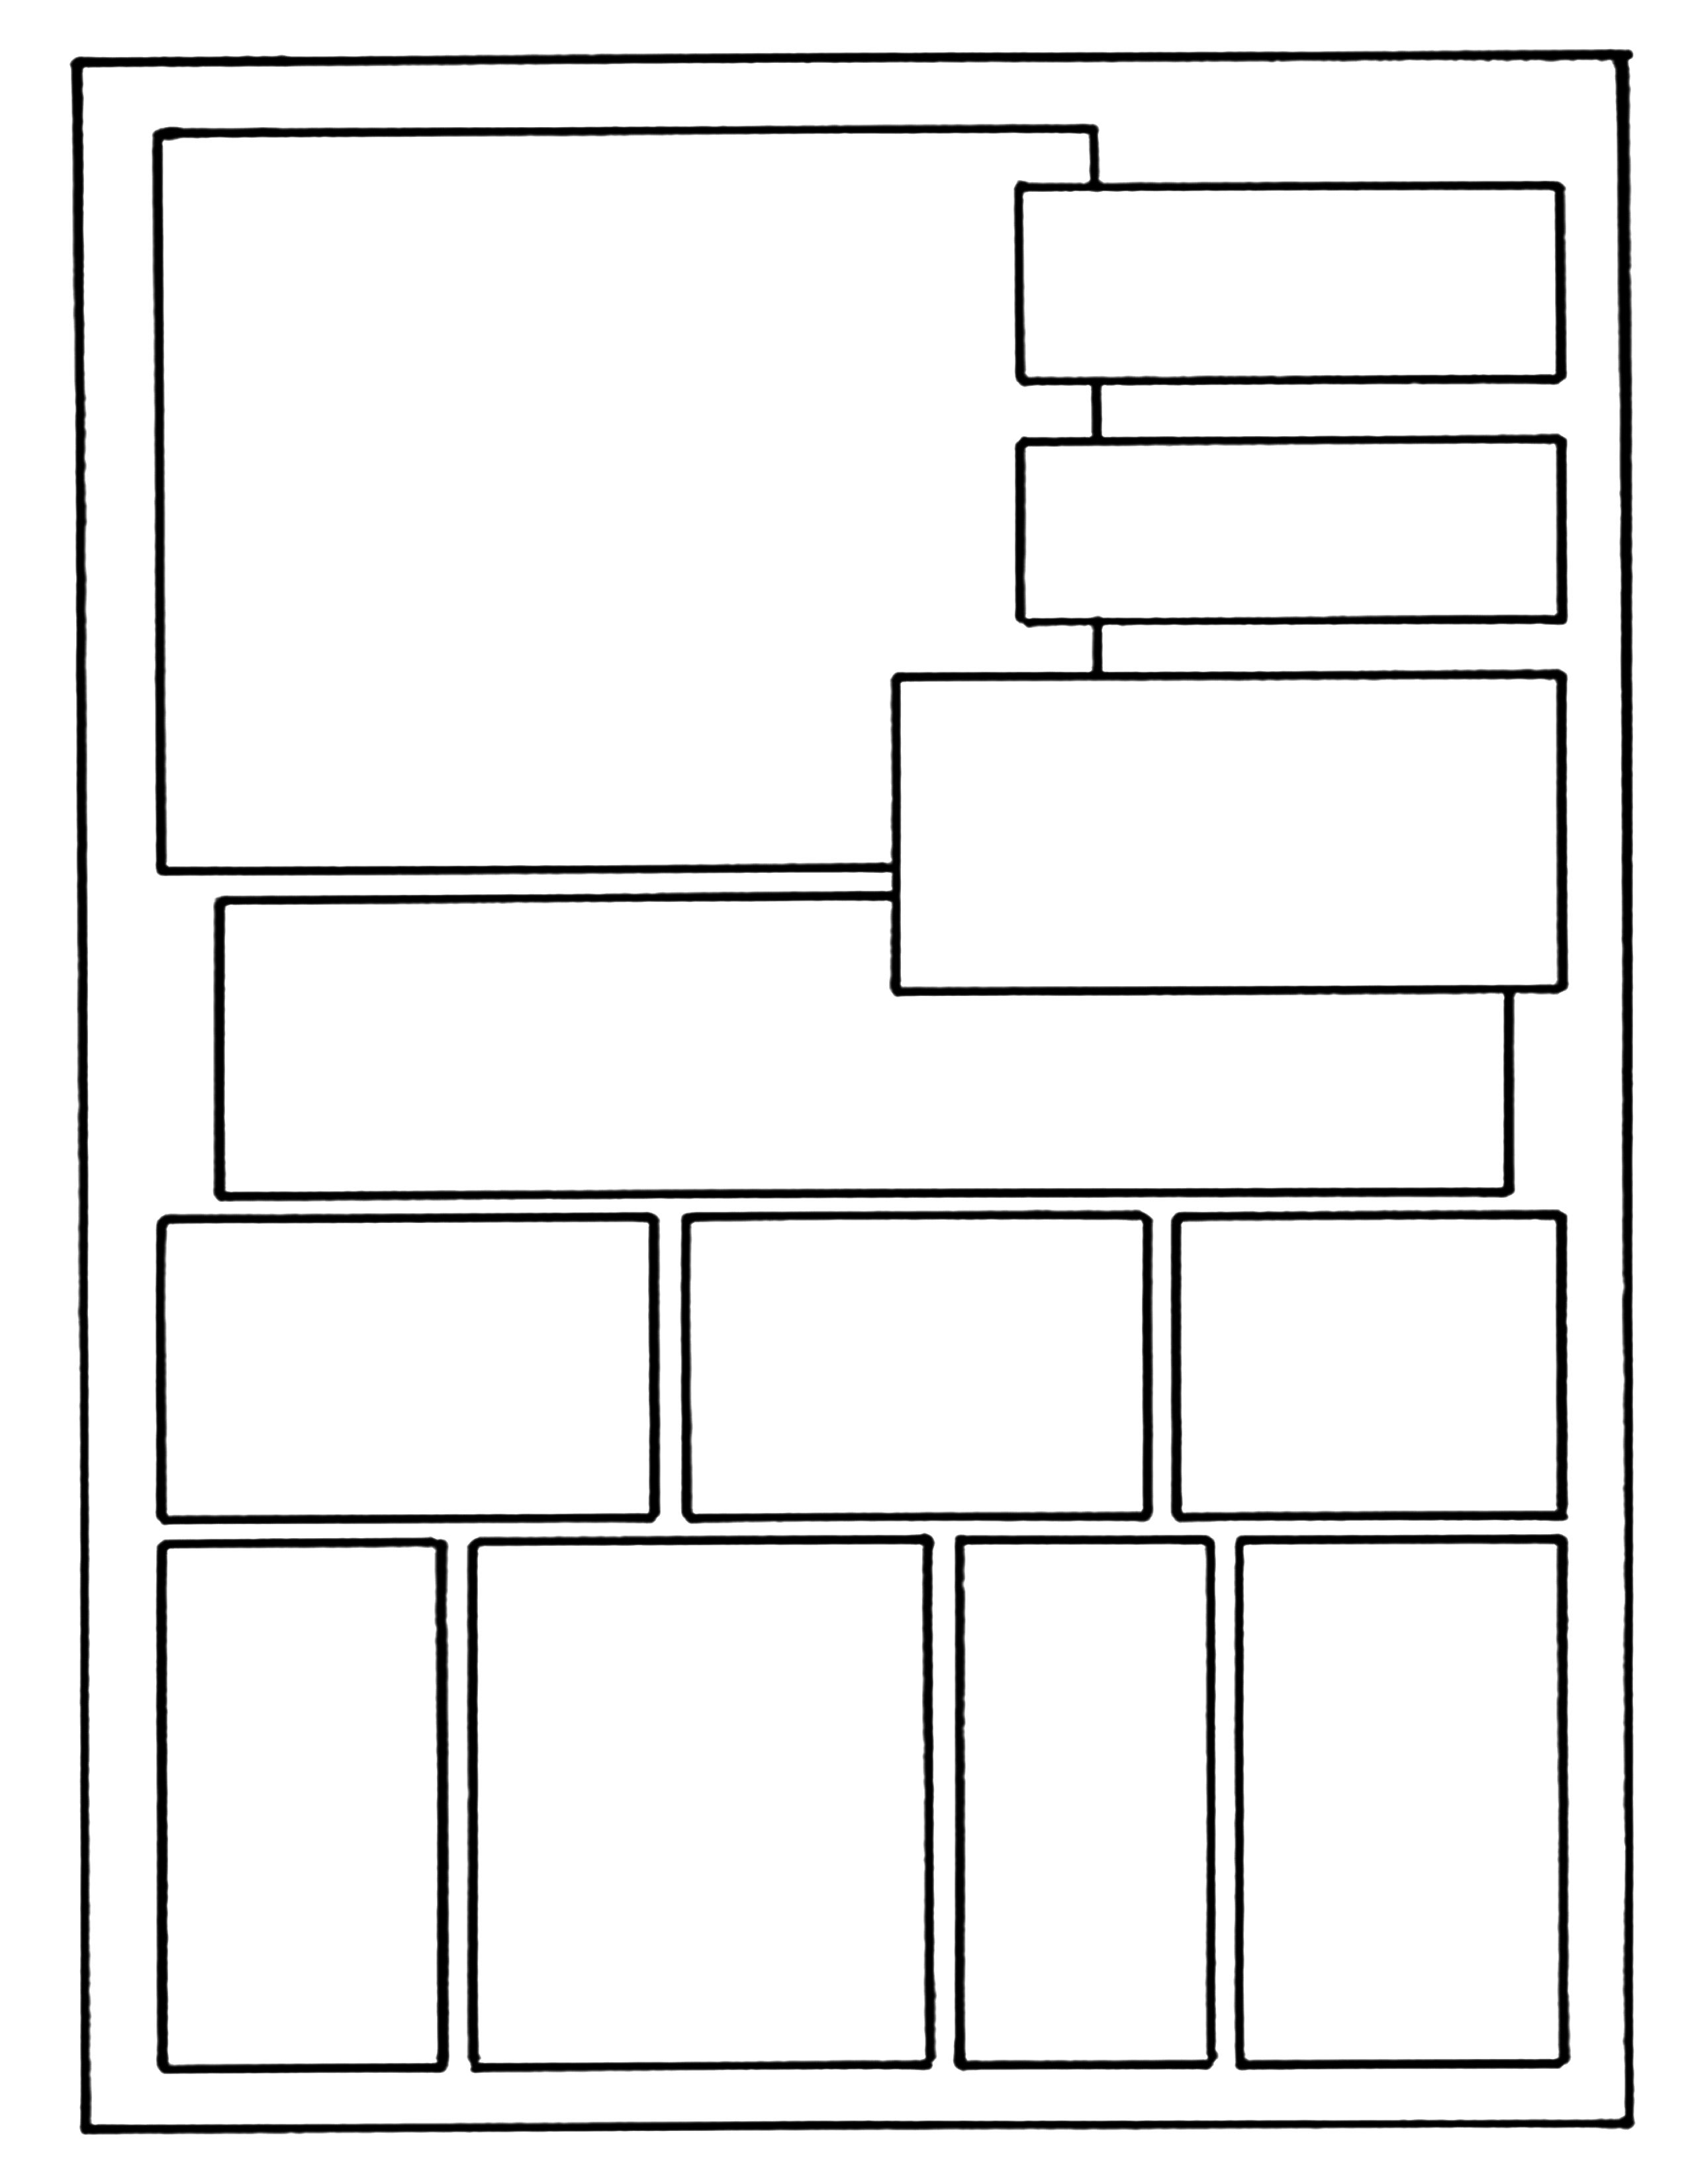 layout on 8 1 x 11 example comic book layout superhero quilt pinterest book layouts. Black Bedroom Furniture Sets. Home Design Ideas